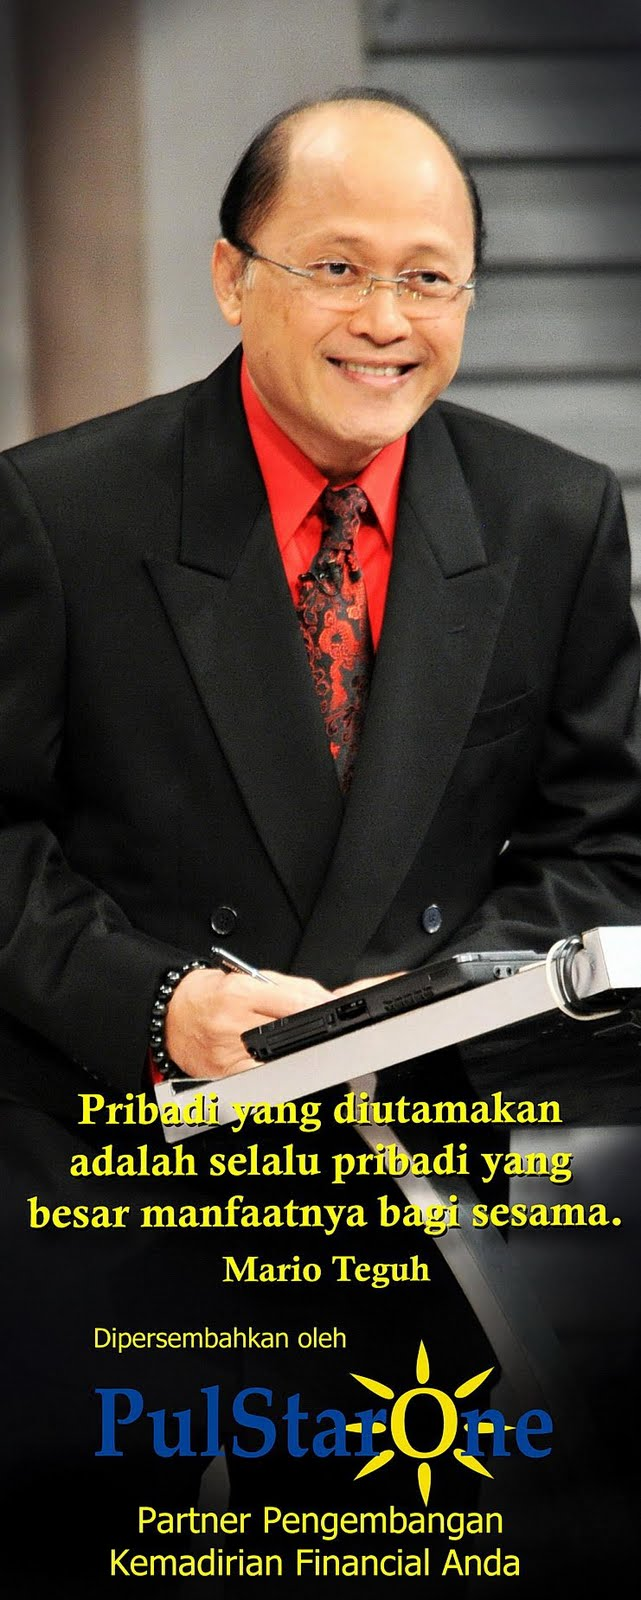 Biography of mario teguh biographies famous leaders biography of mario teguh reheart Choice Image